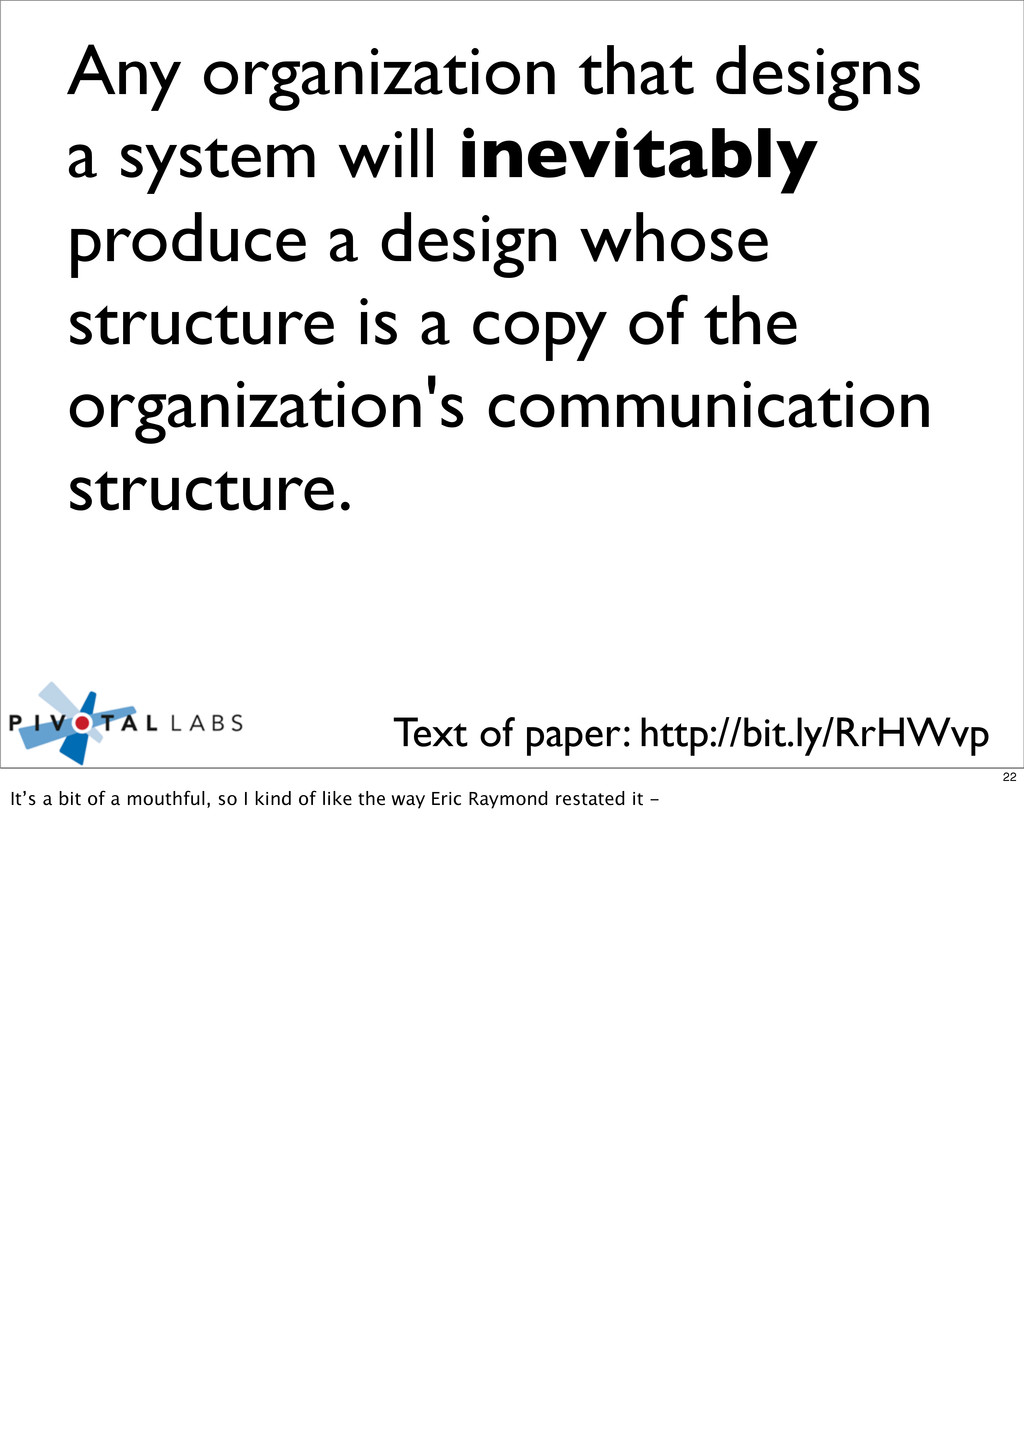 Any organization that designs a system will ine...